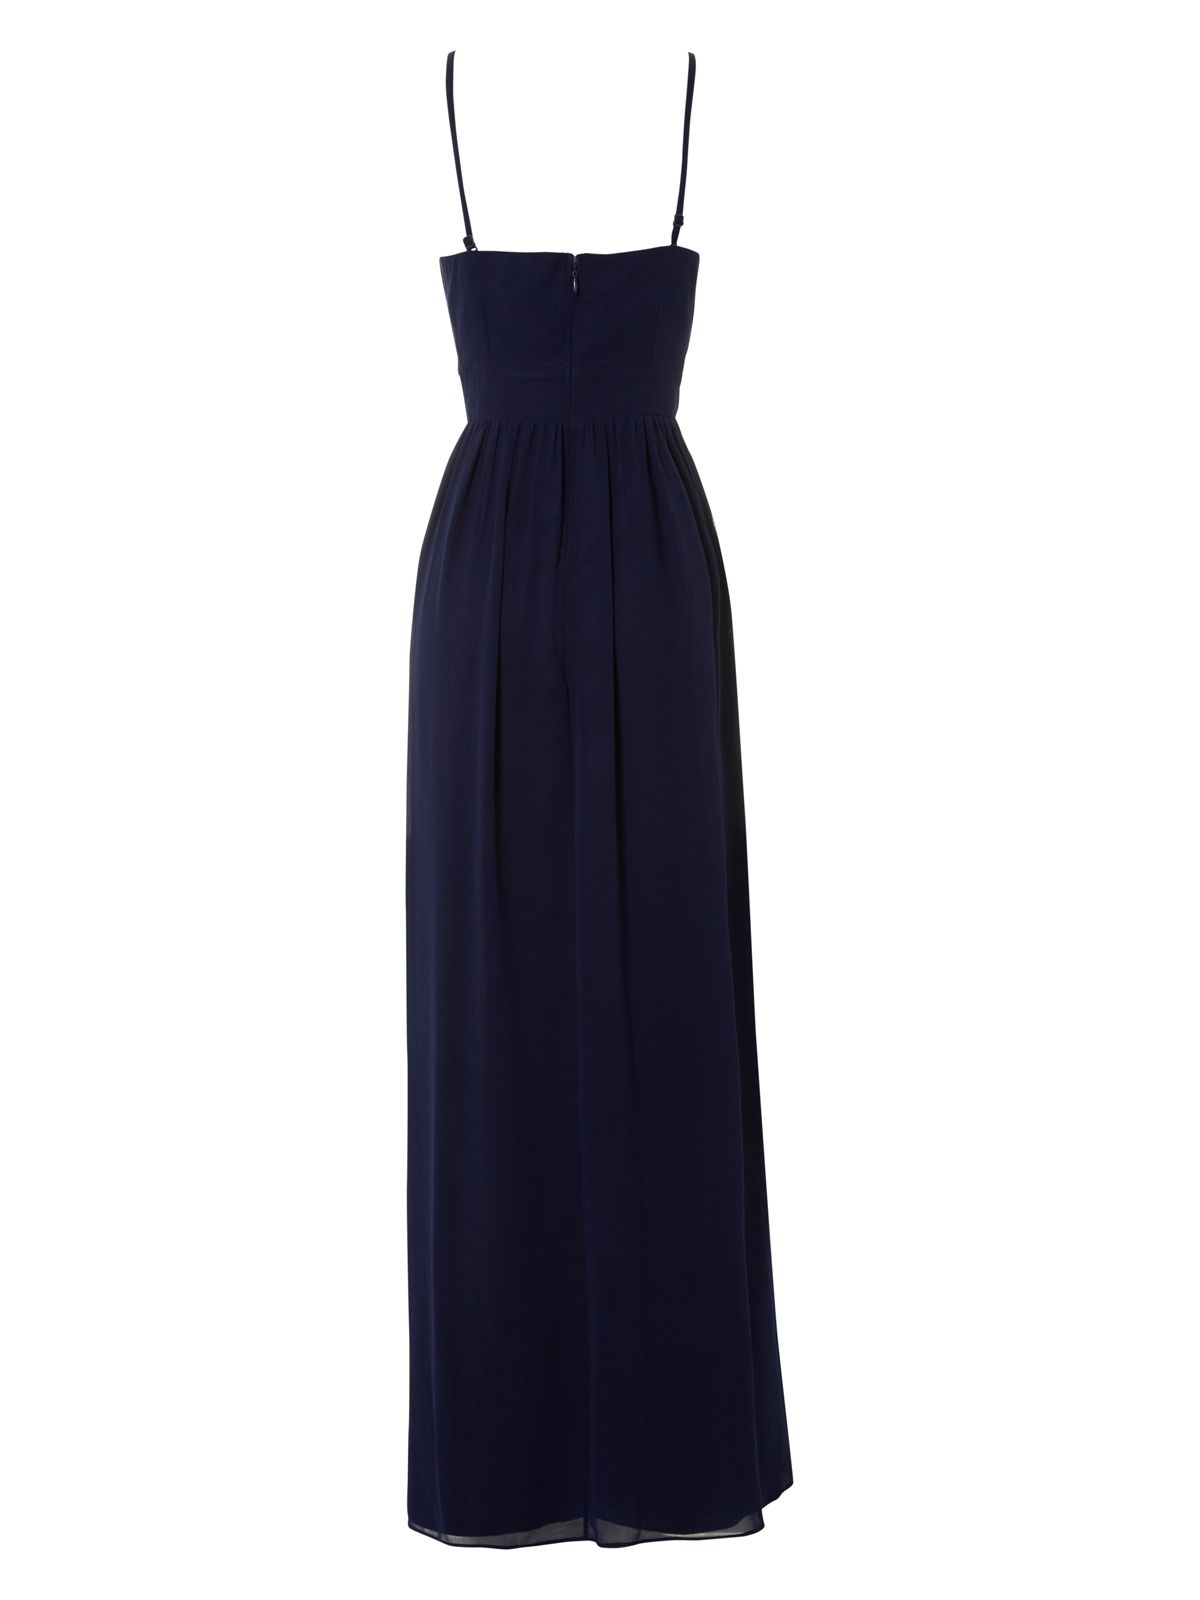 Jane Norman Pleated Bust Maxi Dress in Midnight Blue (Blue)